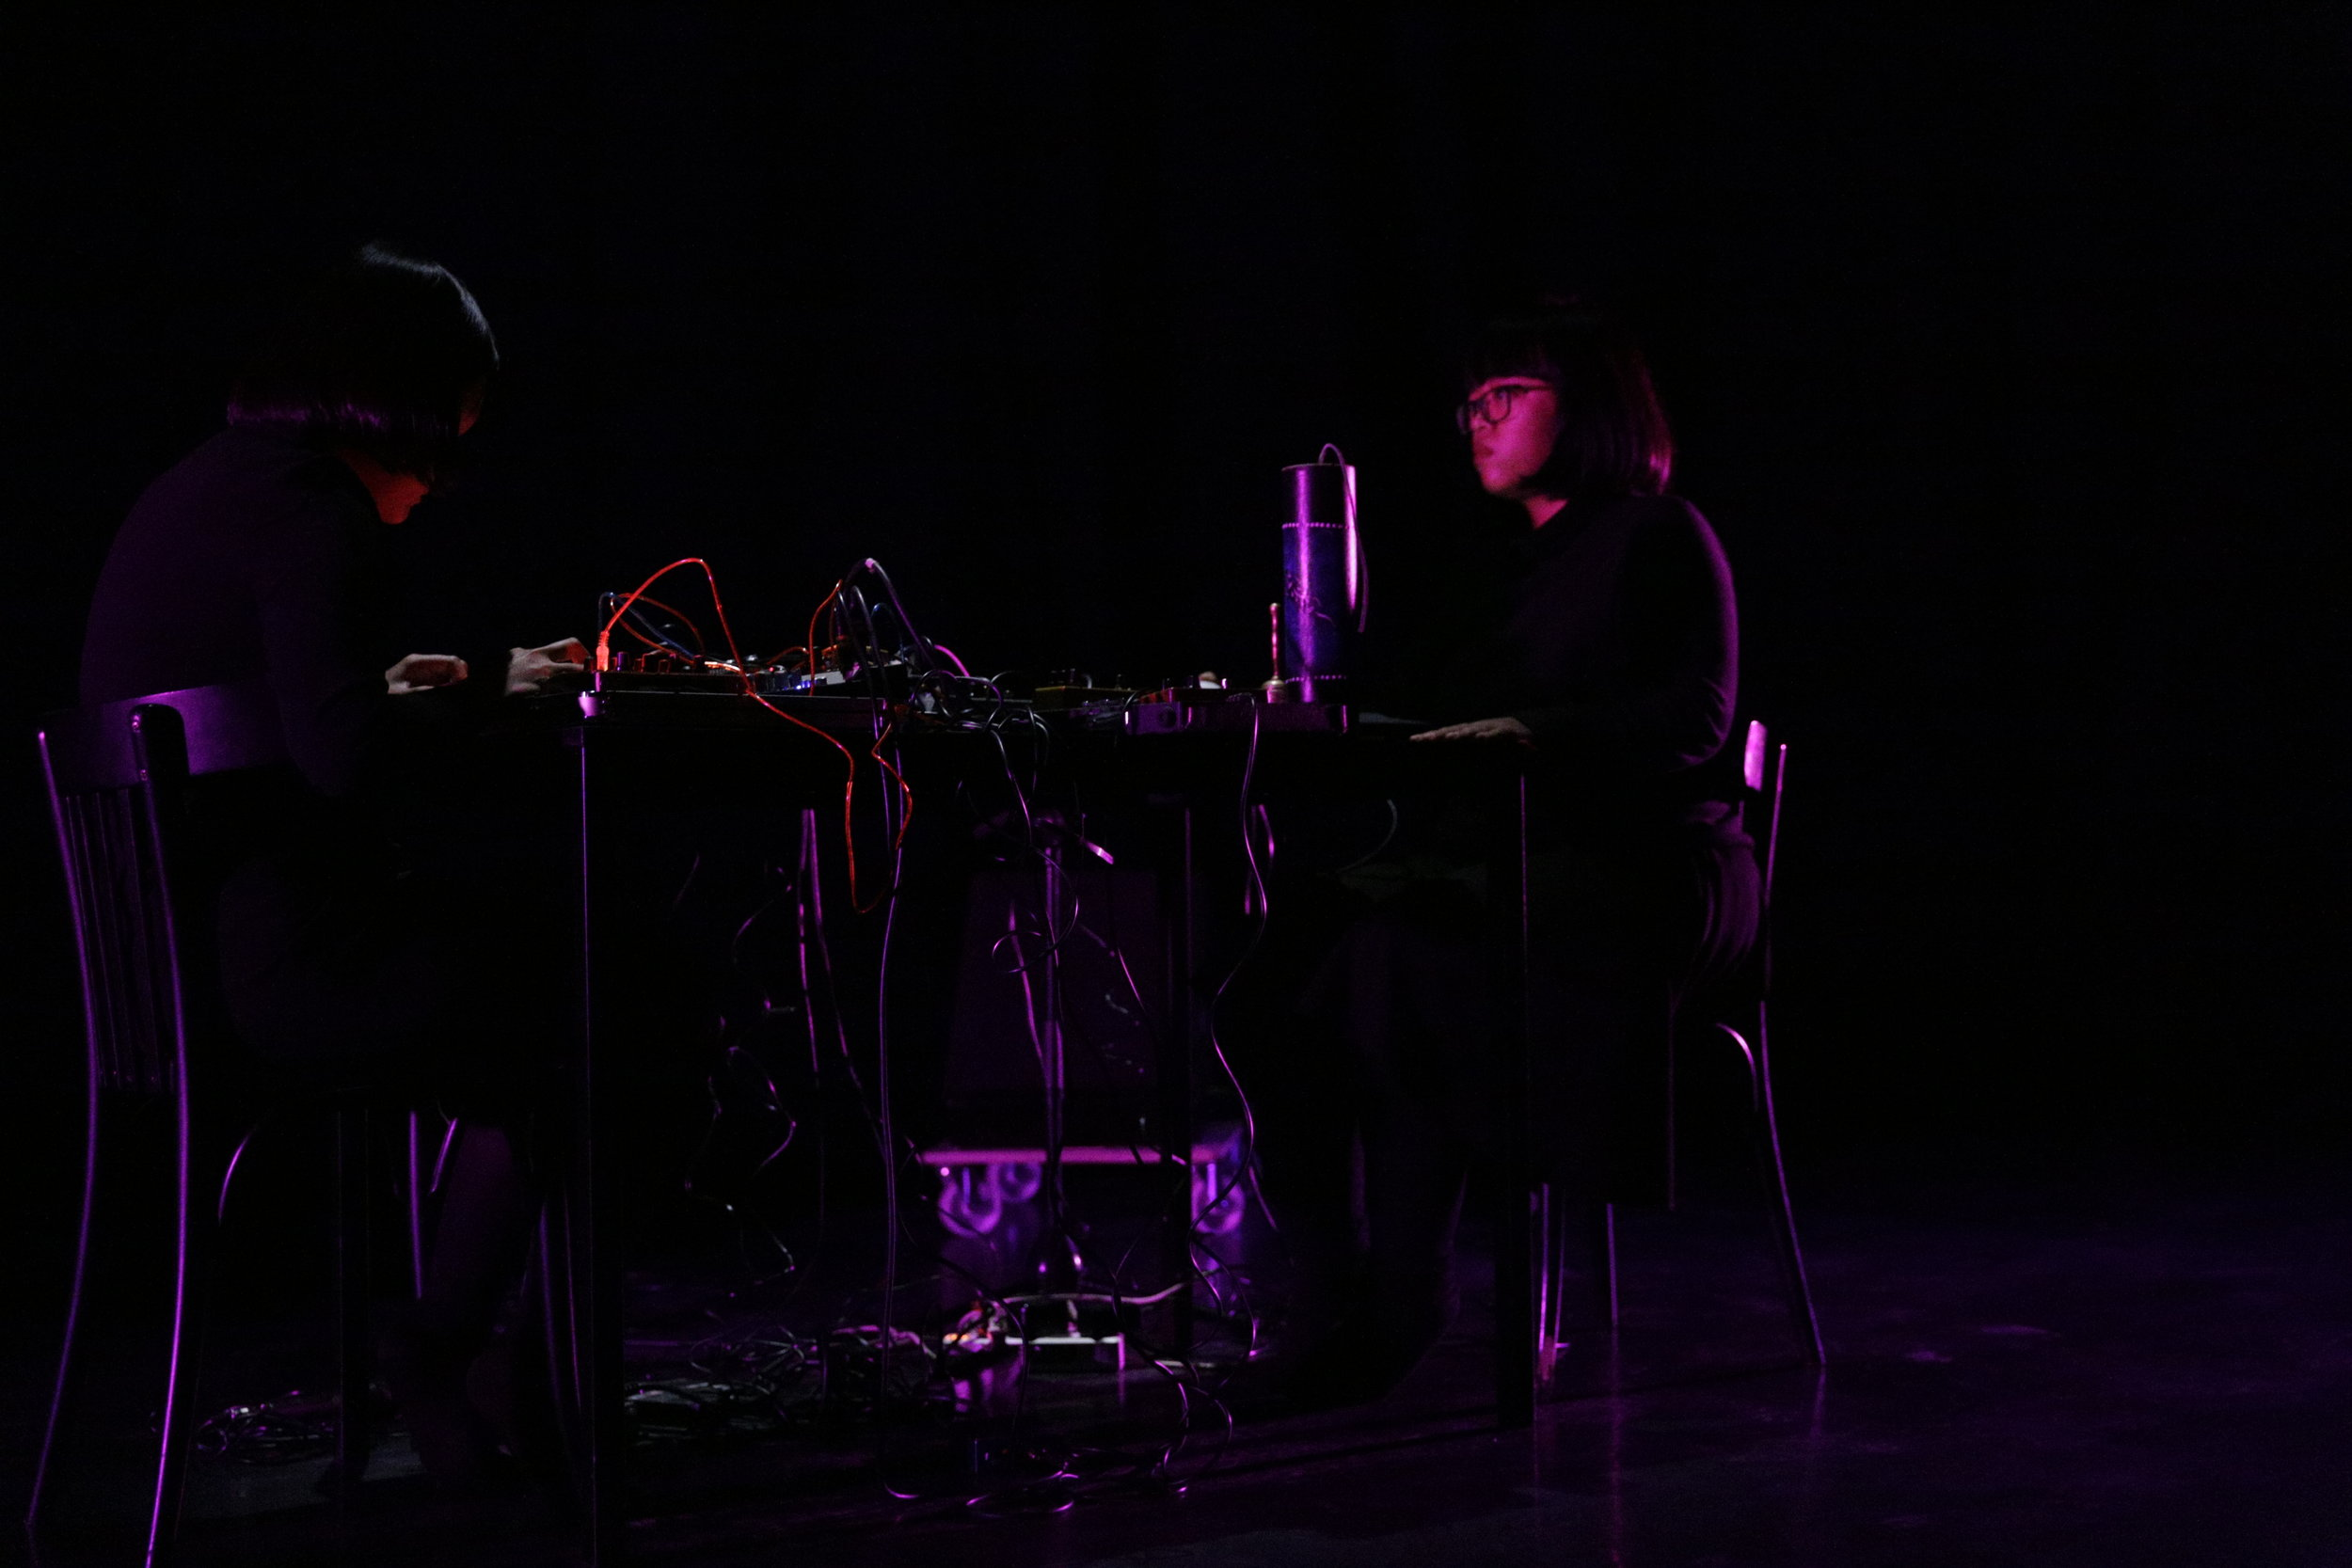 Sarana performs at the CTM Festival in Berlin. Photo courtesy of Stefanie Kulisch/ CTM 2019